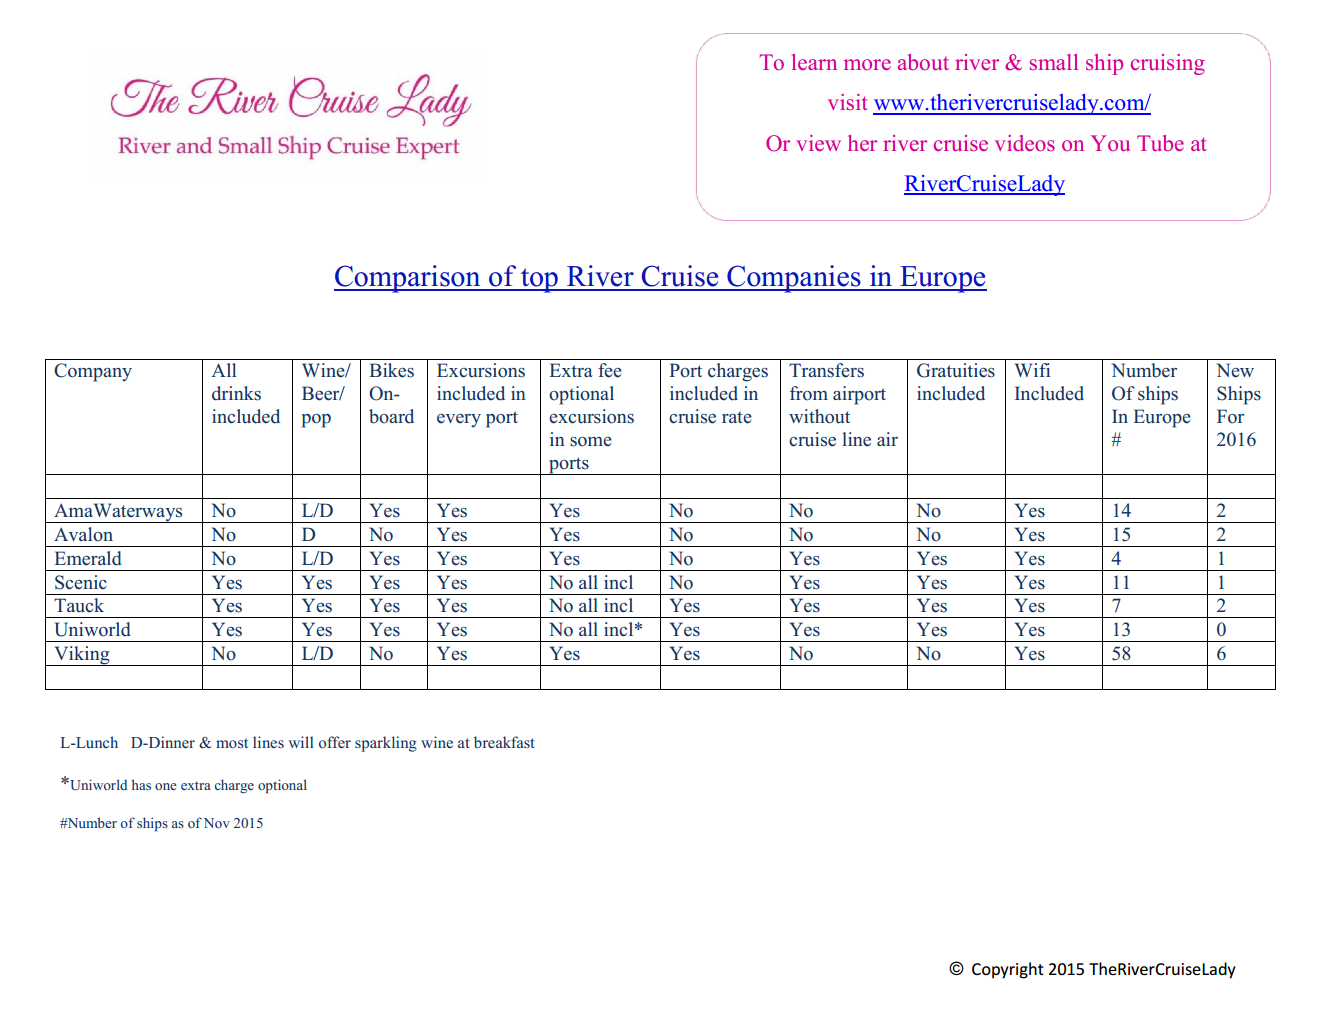 Comparison of top River Cruise Companies in Europe